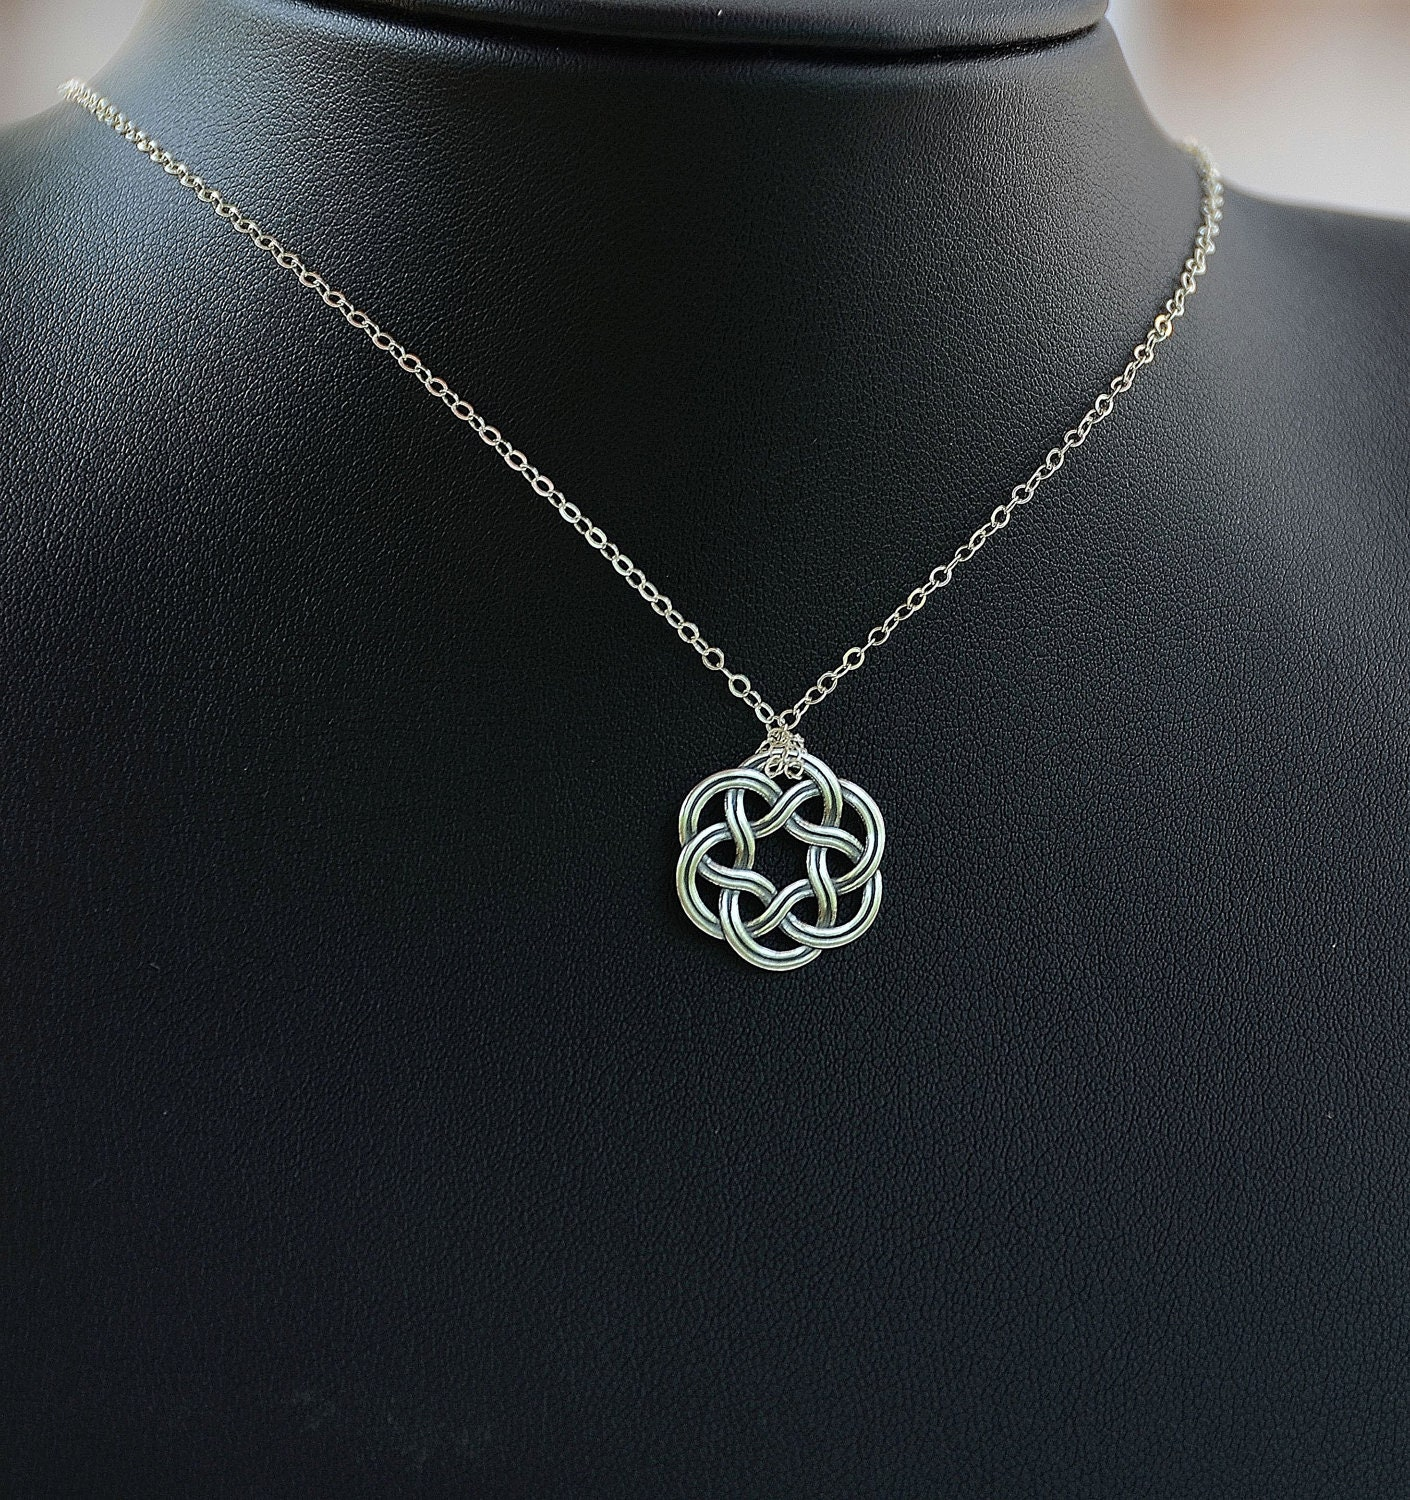 all sterling silver celtic necklace celtic jewelry celtic